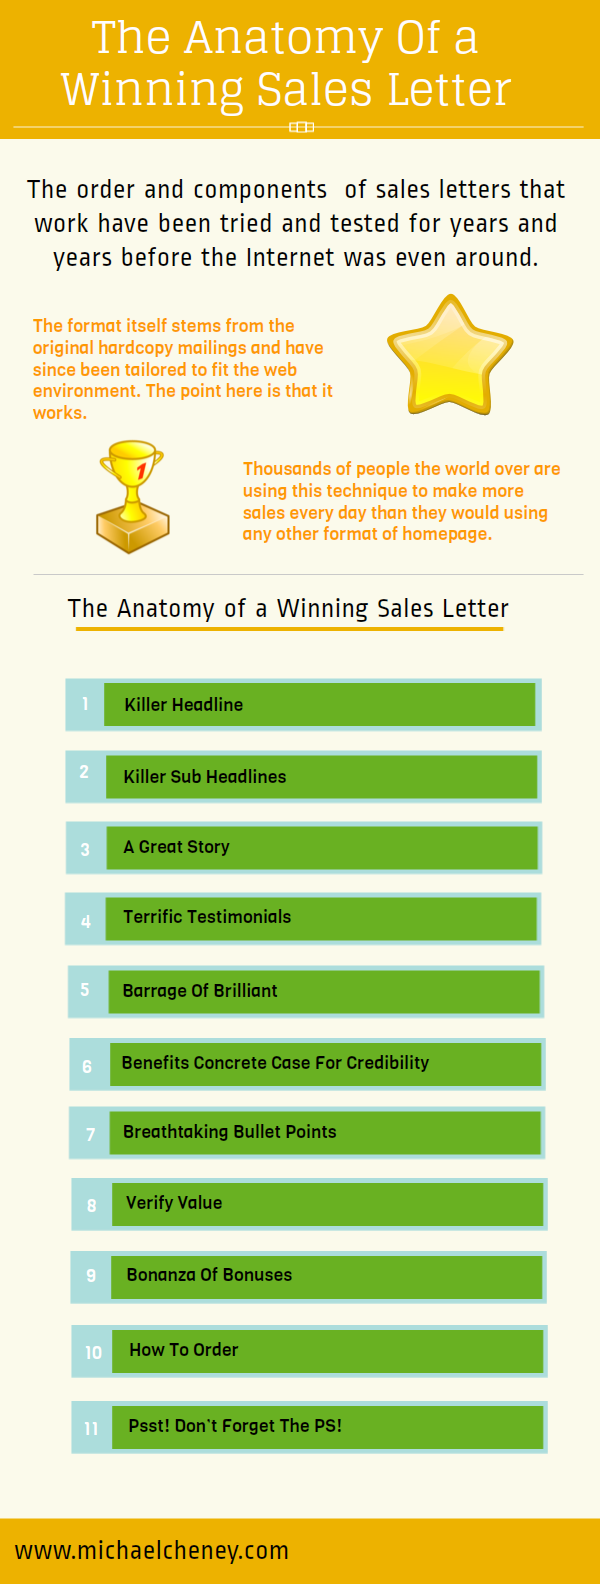 The Anatomy Of A Winning Sales Letter How To Get More Leads And